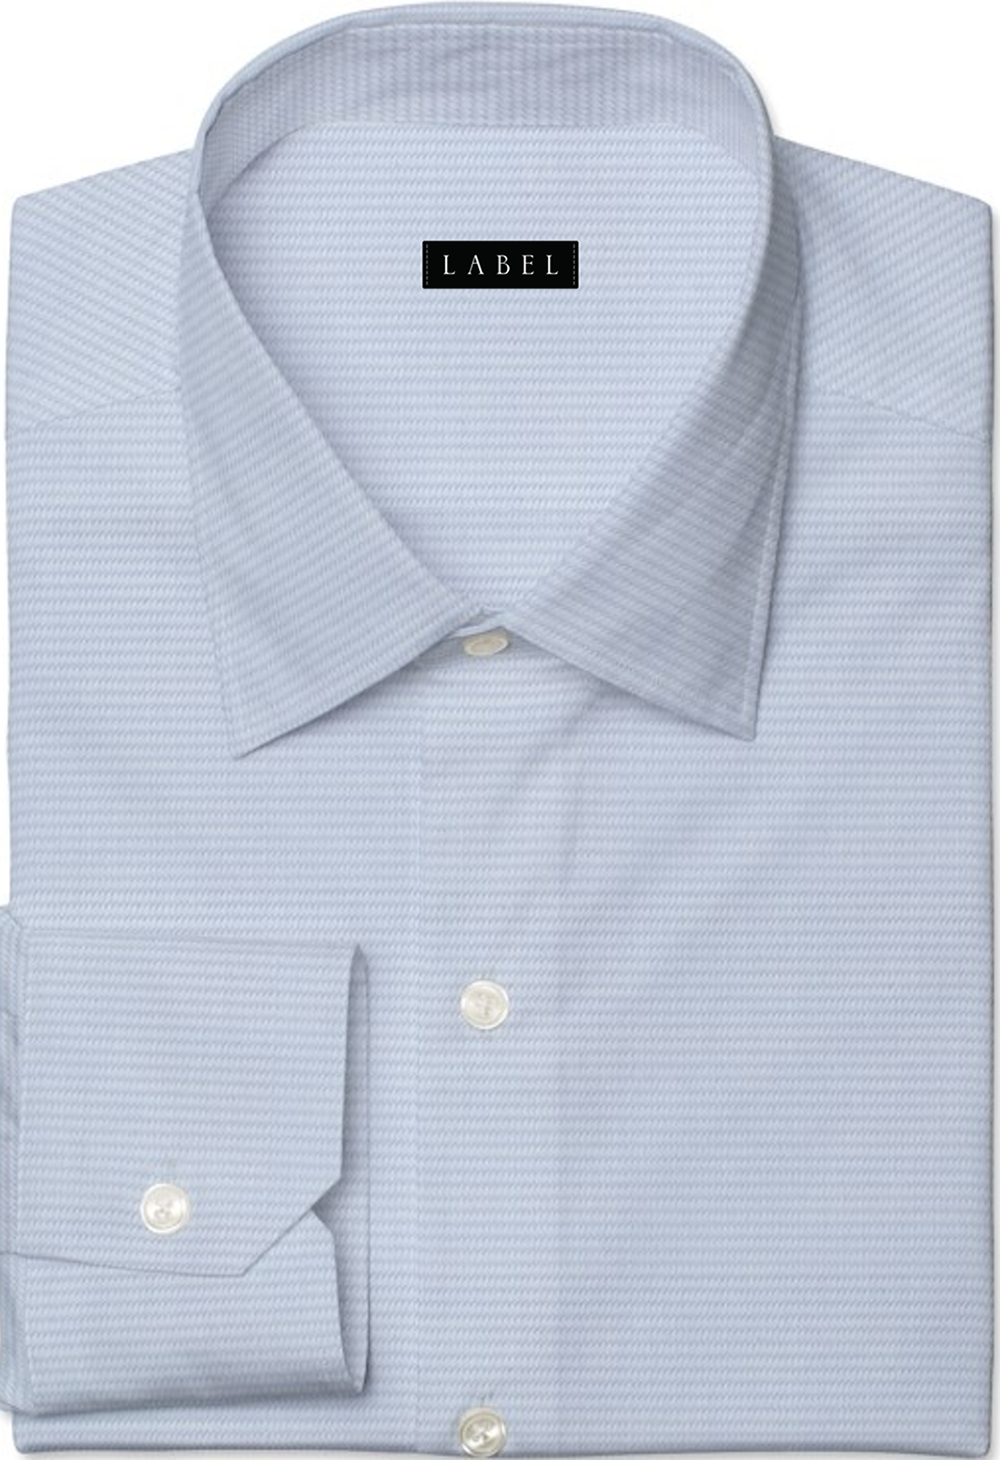 Custom Dress Shirts Boston  Dreamworks with Cuffs And Collars Boston